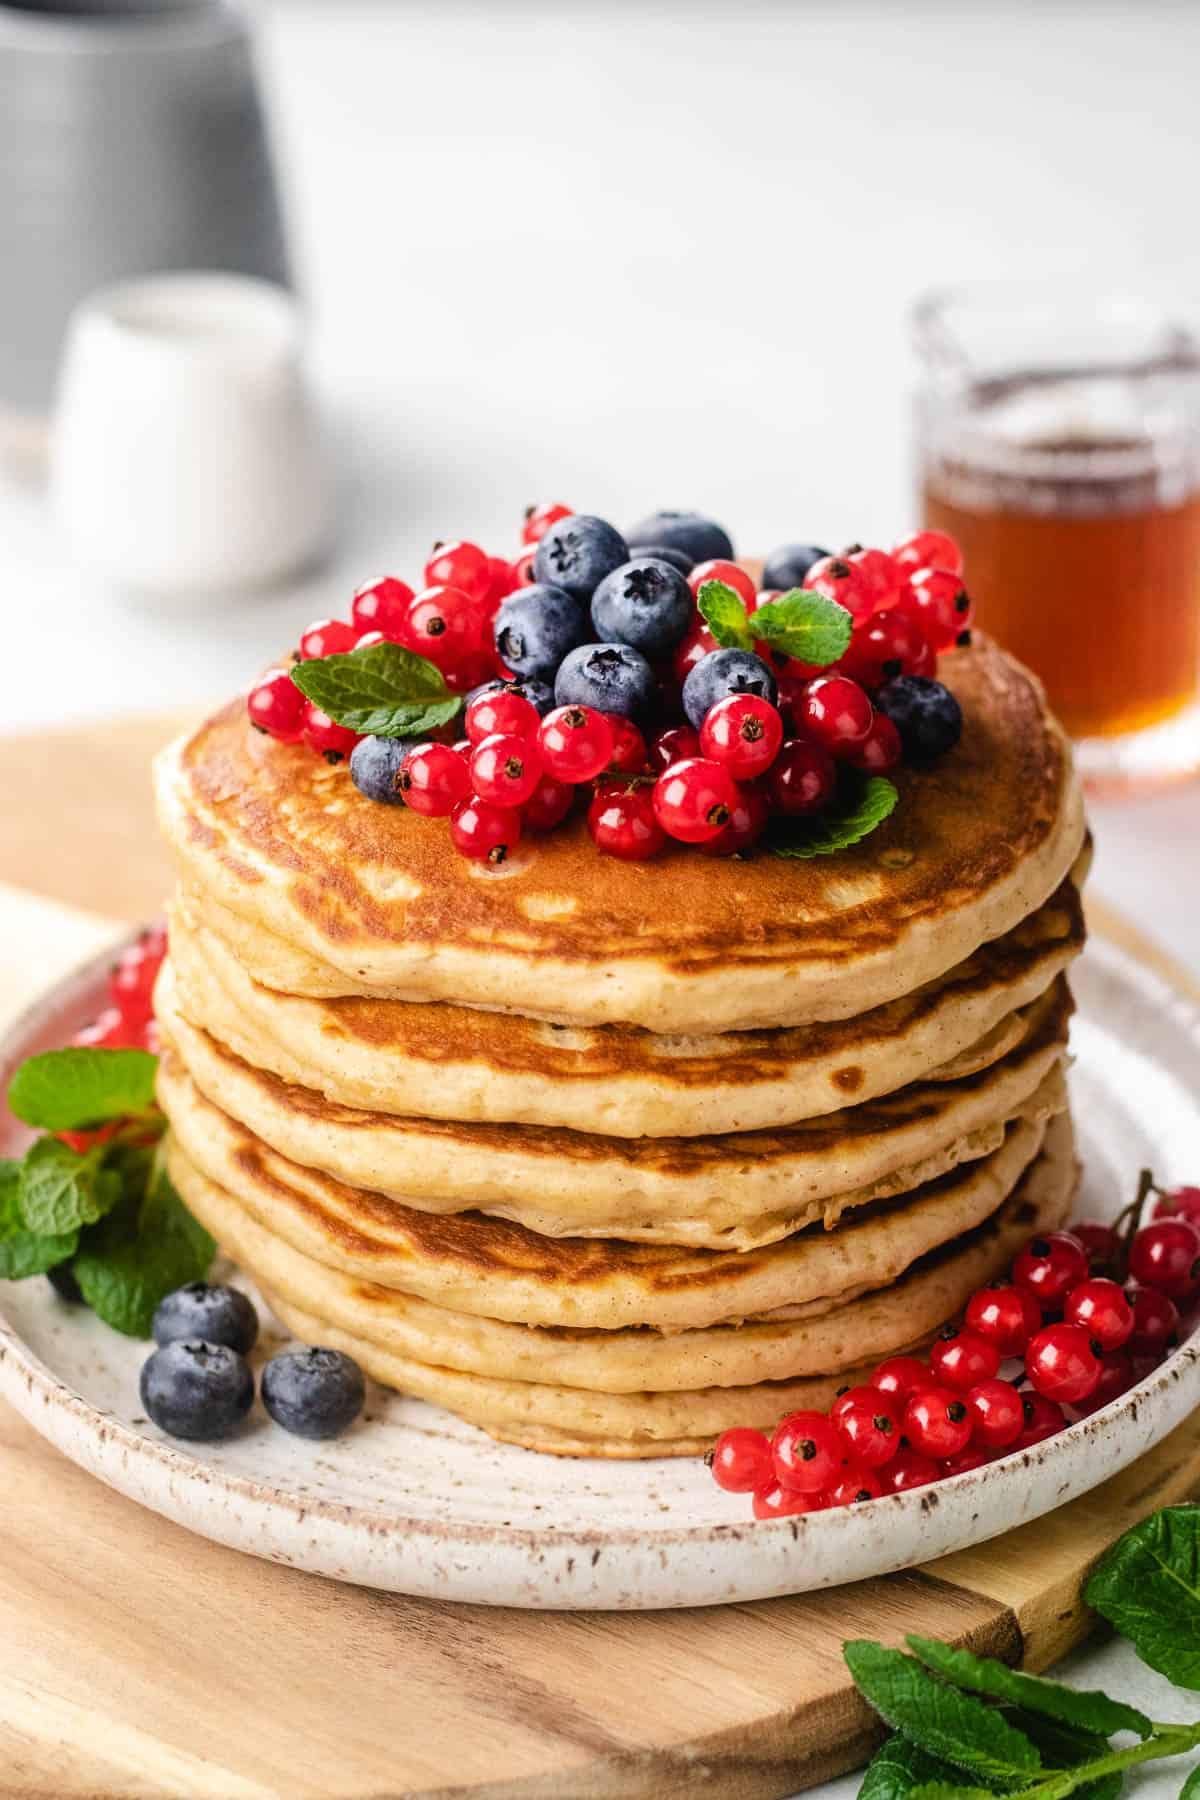 A stack of pancakes, topped with berries on a plate.